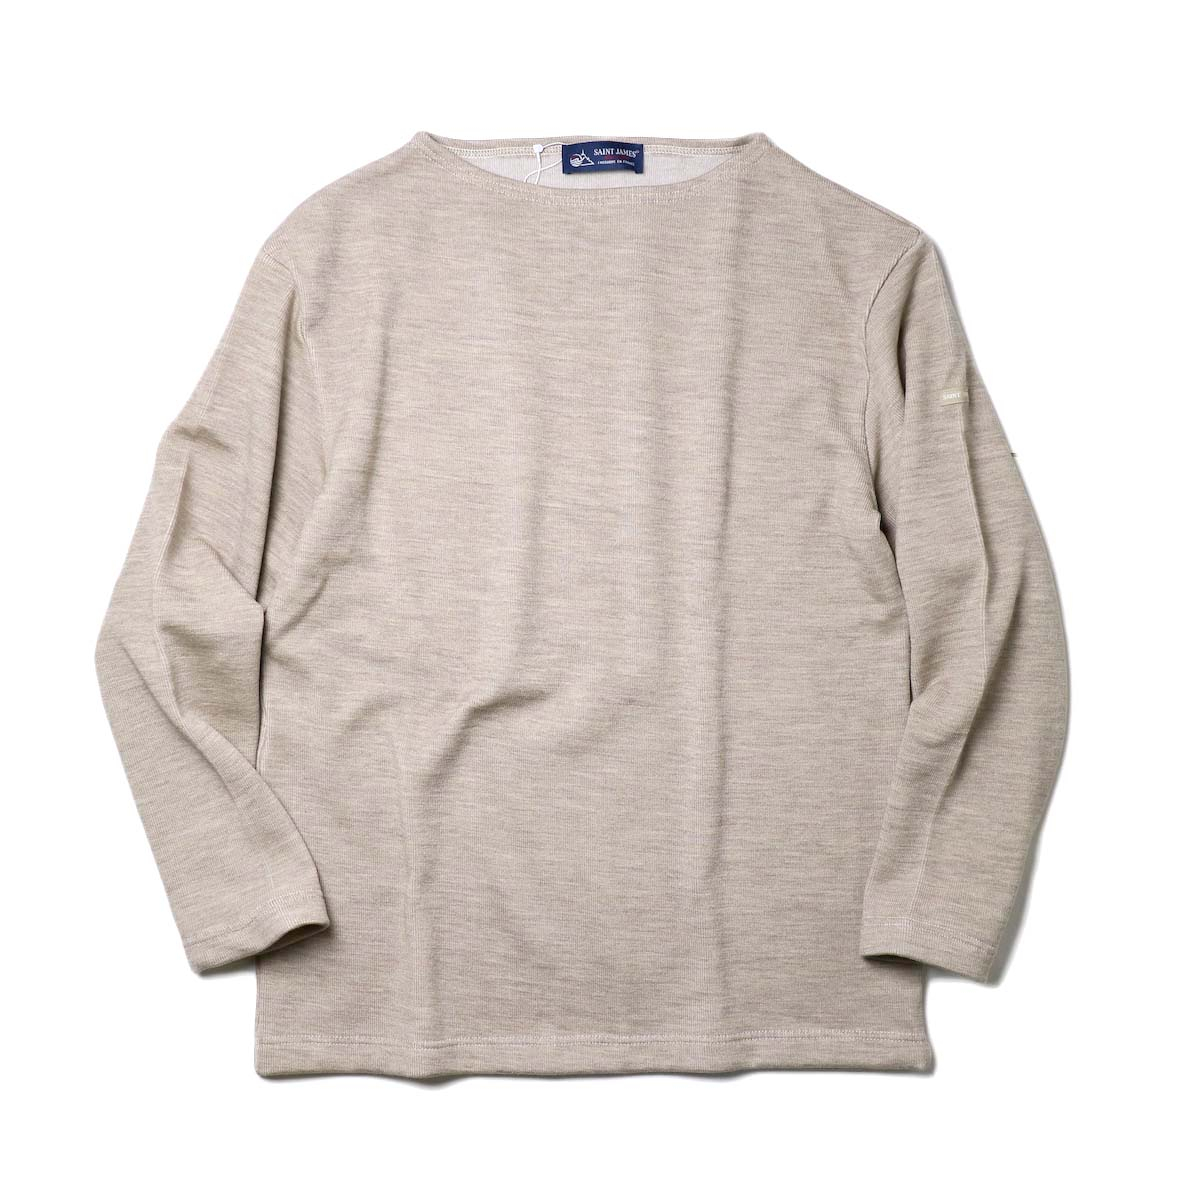 SAINT JAMES / DOUBLEFACE SWEATER (Sabre)